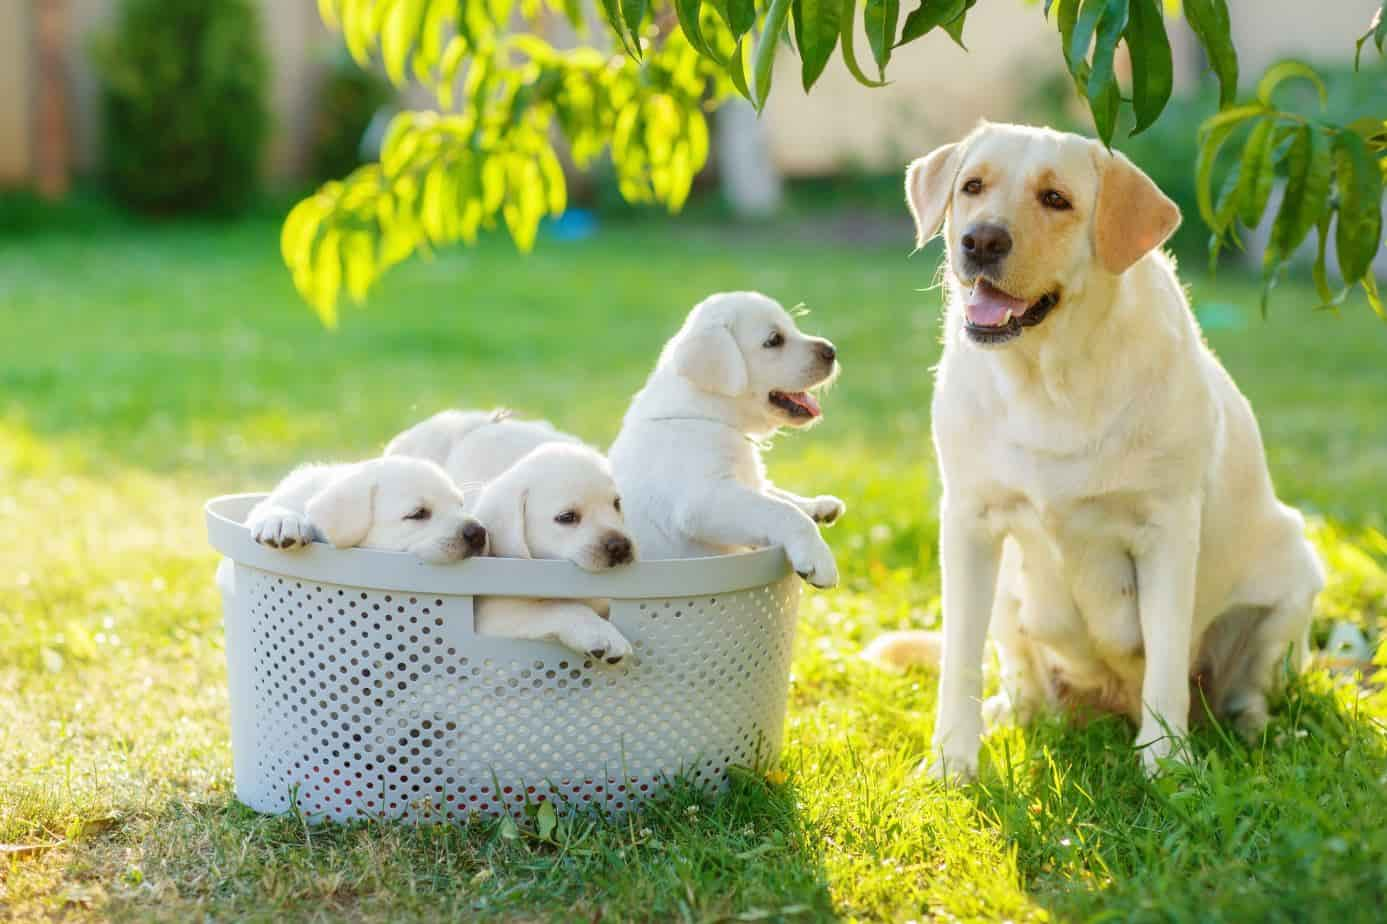 Dog with its puppies in a basket